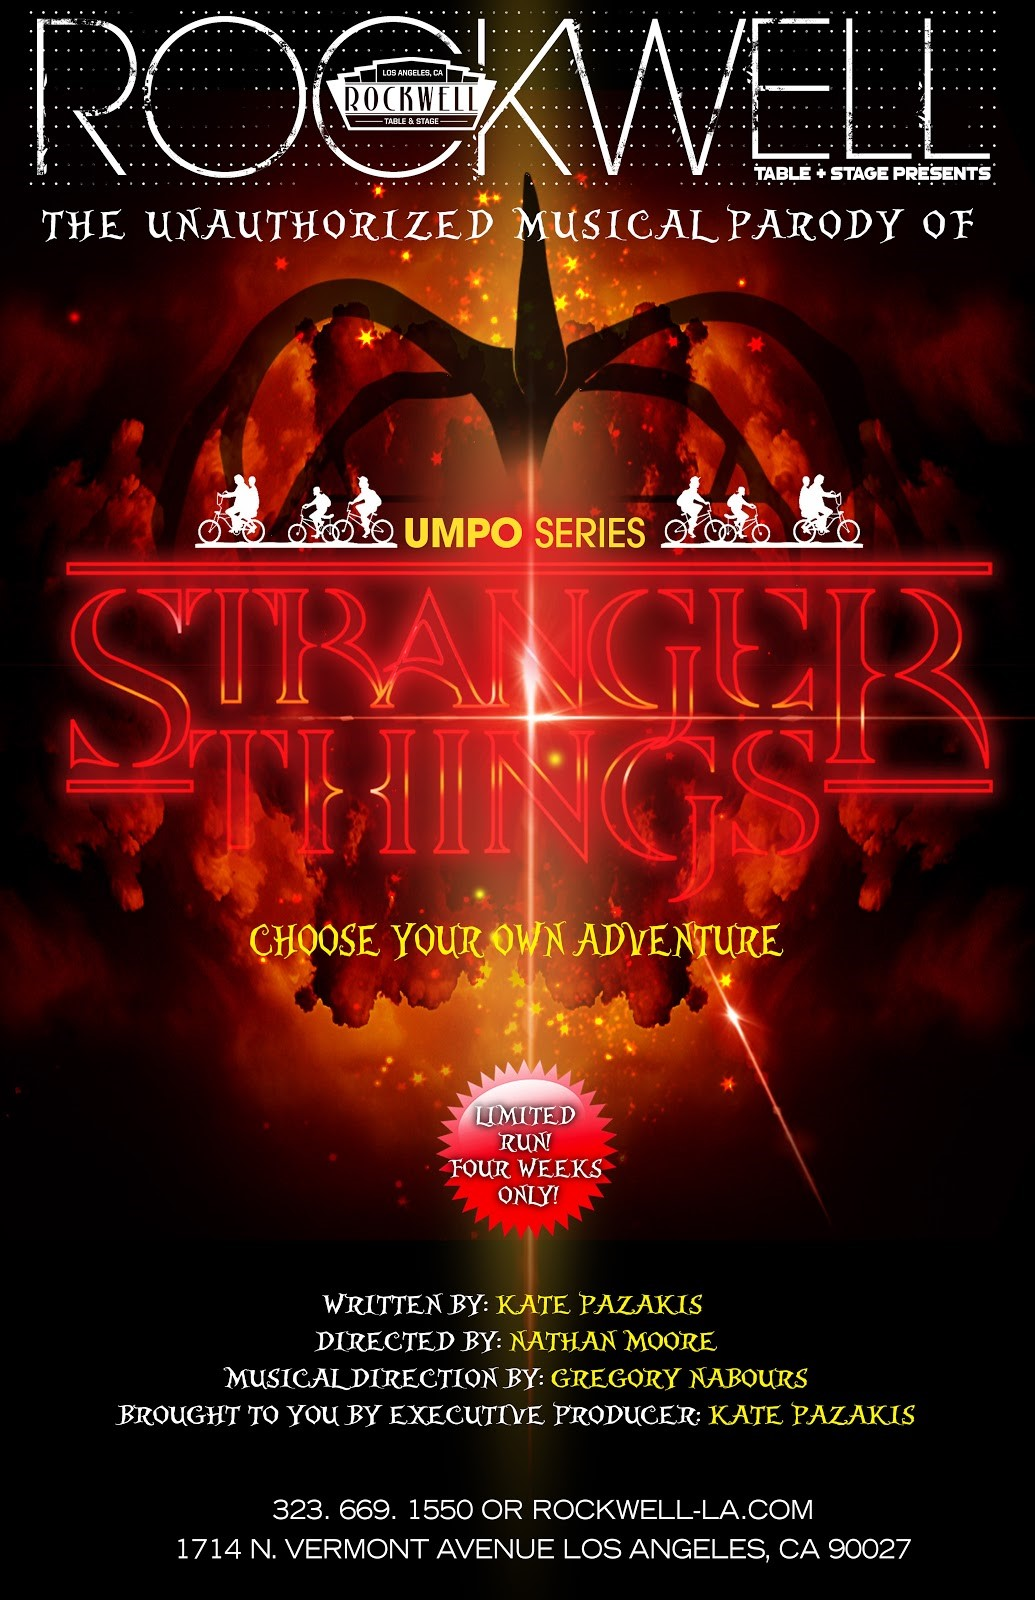 The 'Unauthorized Musical Parody of Stranger Things' Comes